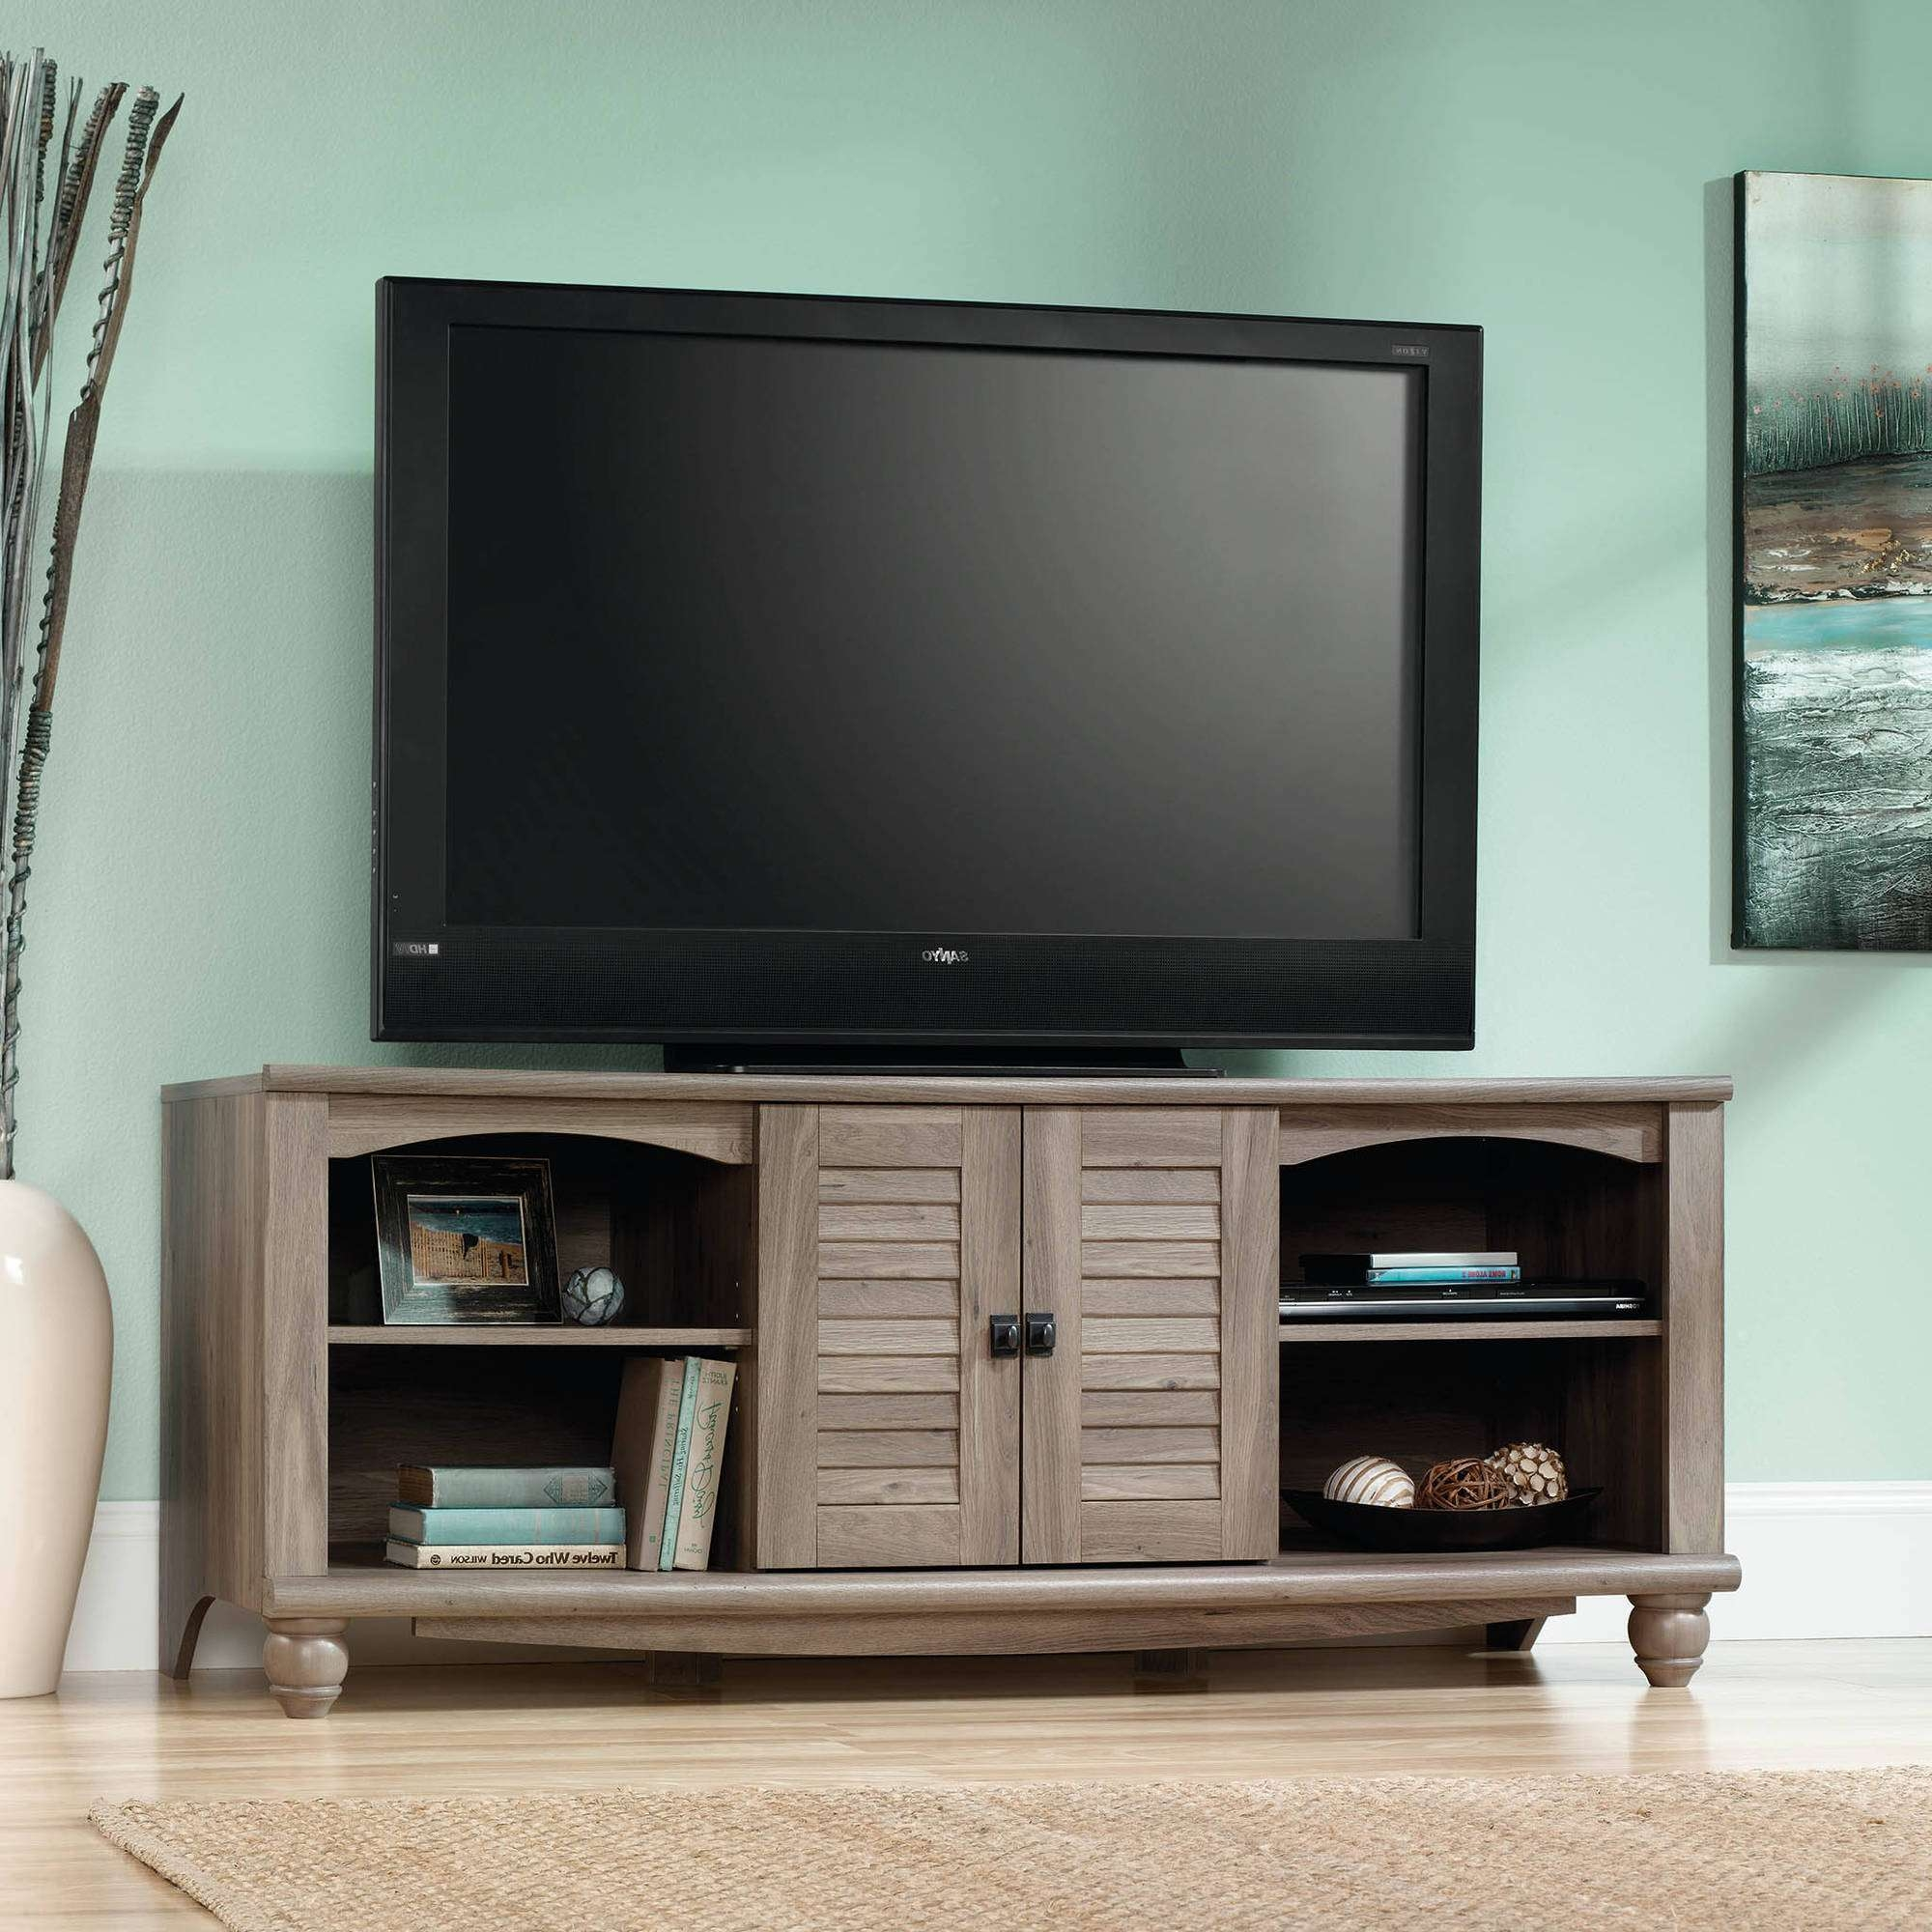 Tv Stands & Entertainment Centers – Walmart Regarding Tv Stands With Baskets (View 13 of 15)